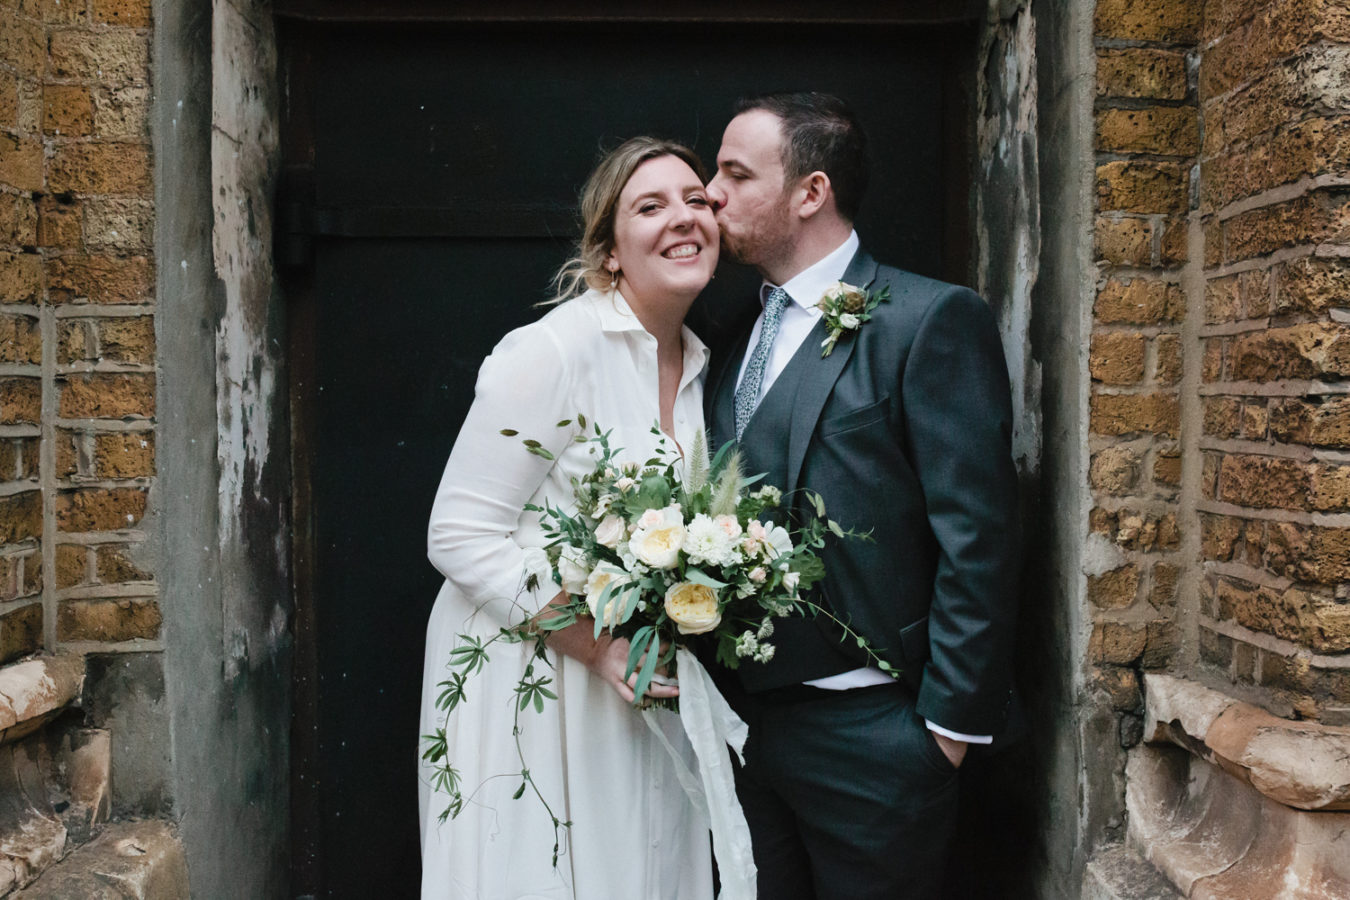 A bride and groom outside of the Bermondsey Bar and Kitchen wedding reception photographed by London & Kent Wedding Photographer Matilda Delves